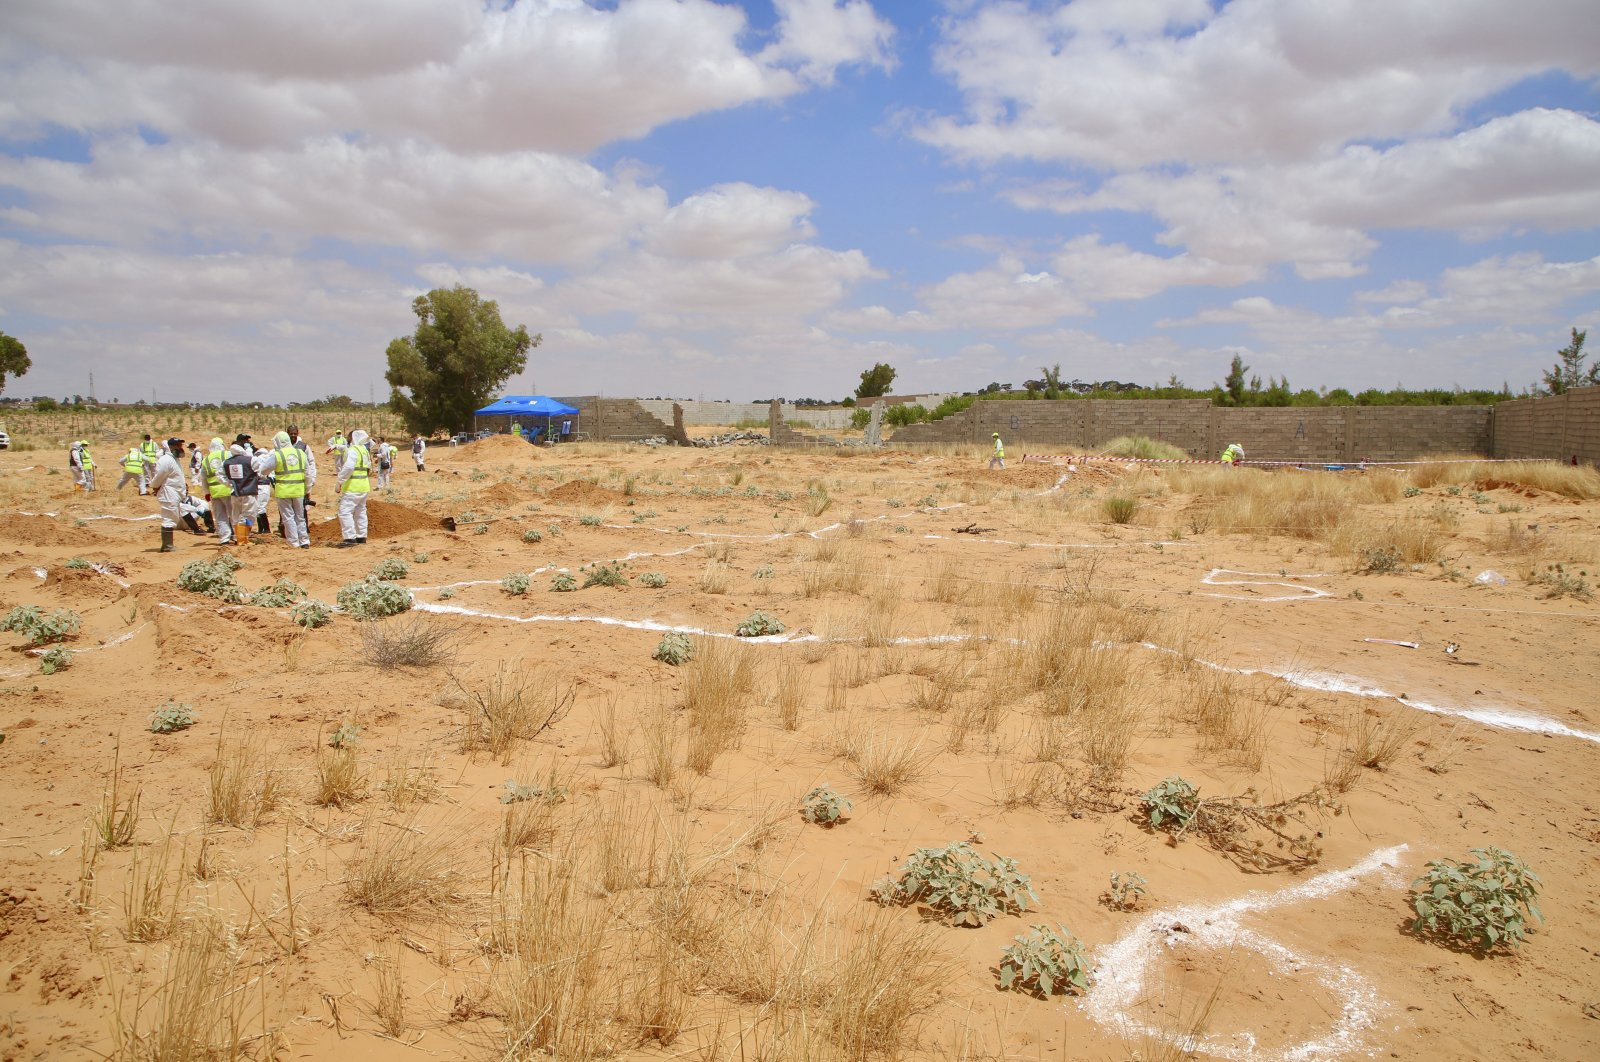 Libyan Ministry of Justice employees dig at the site of a suspected mass grave in the town of Tarhuna, Libya, June 23, 2020. (AP File Photo)